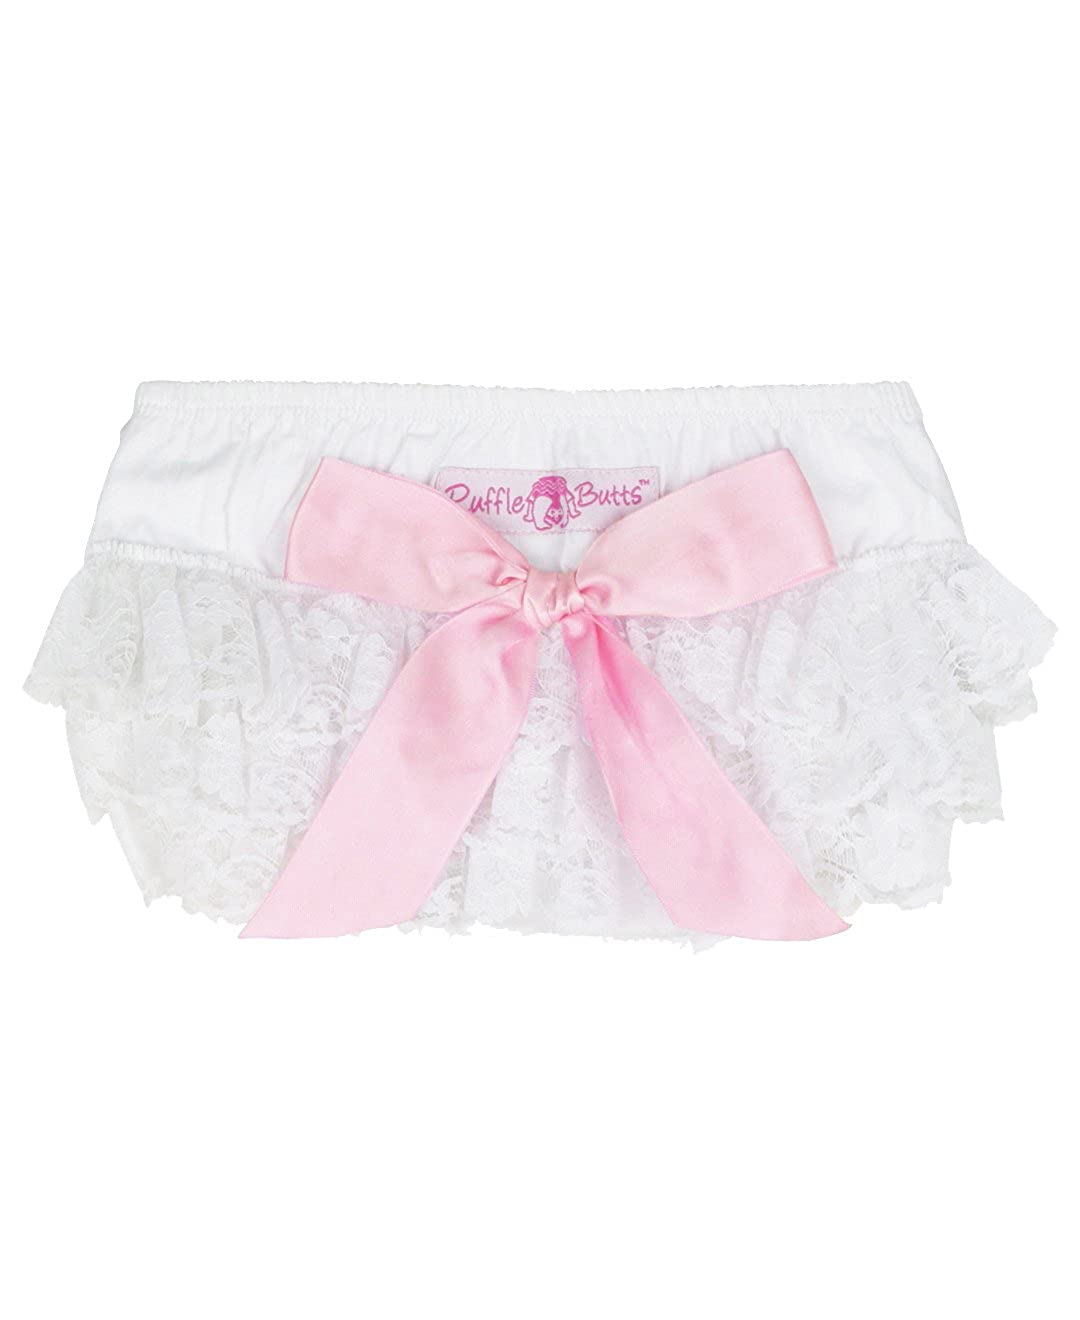 RuffleButts Baby/Toddler Girls Lace Woven Ruffled Bloomer w/Bow RBWYYXX-LACE-SC-BABY